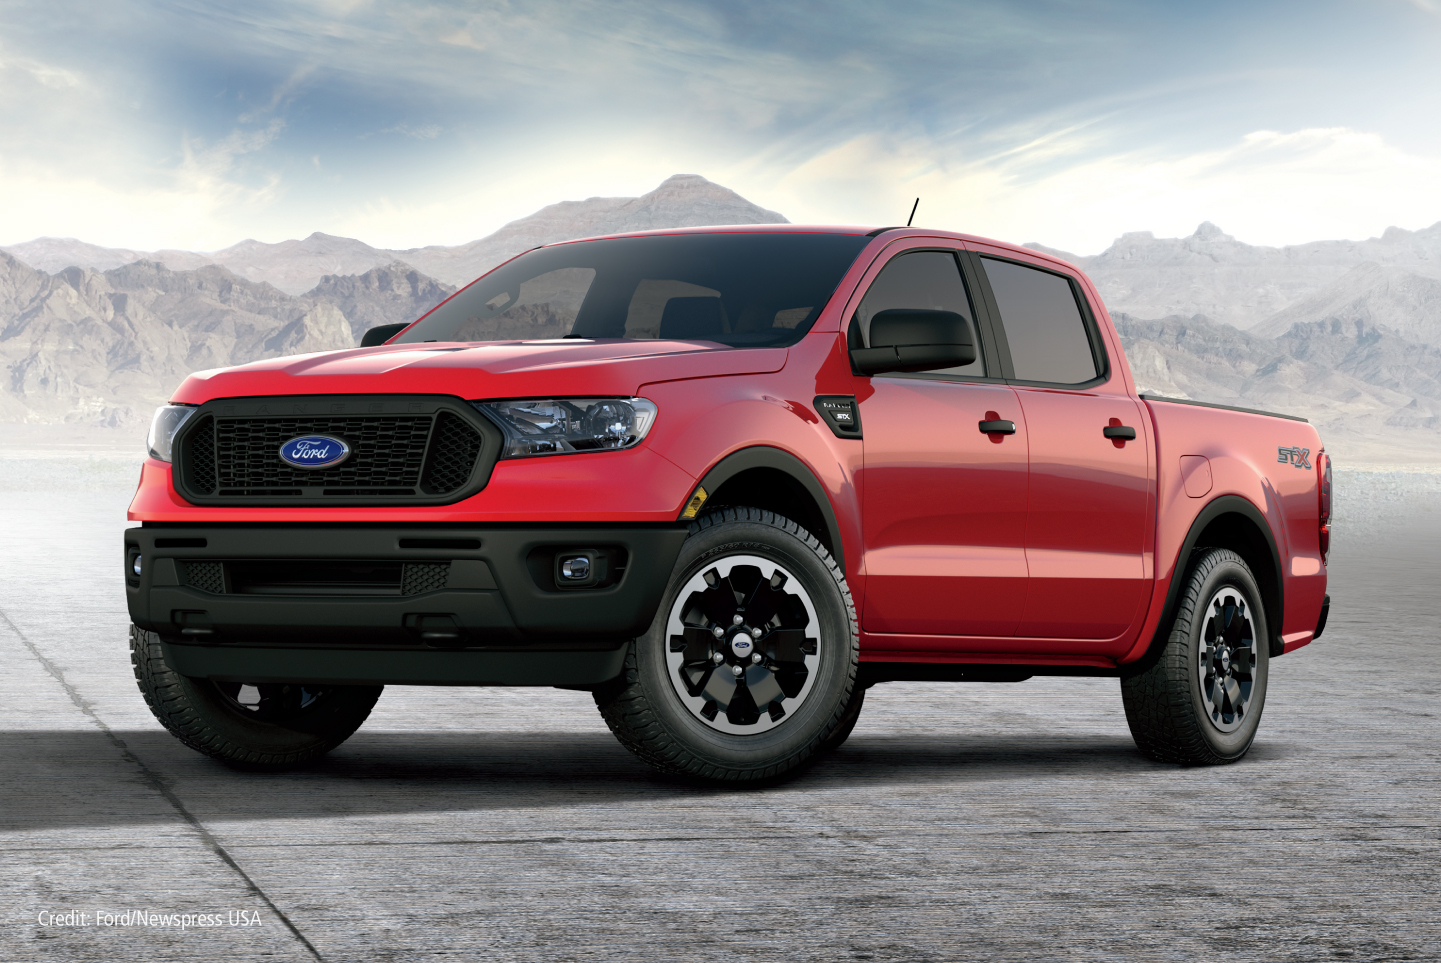 Special Edition Ford Ranger